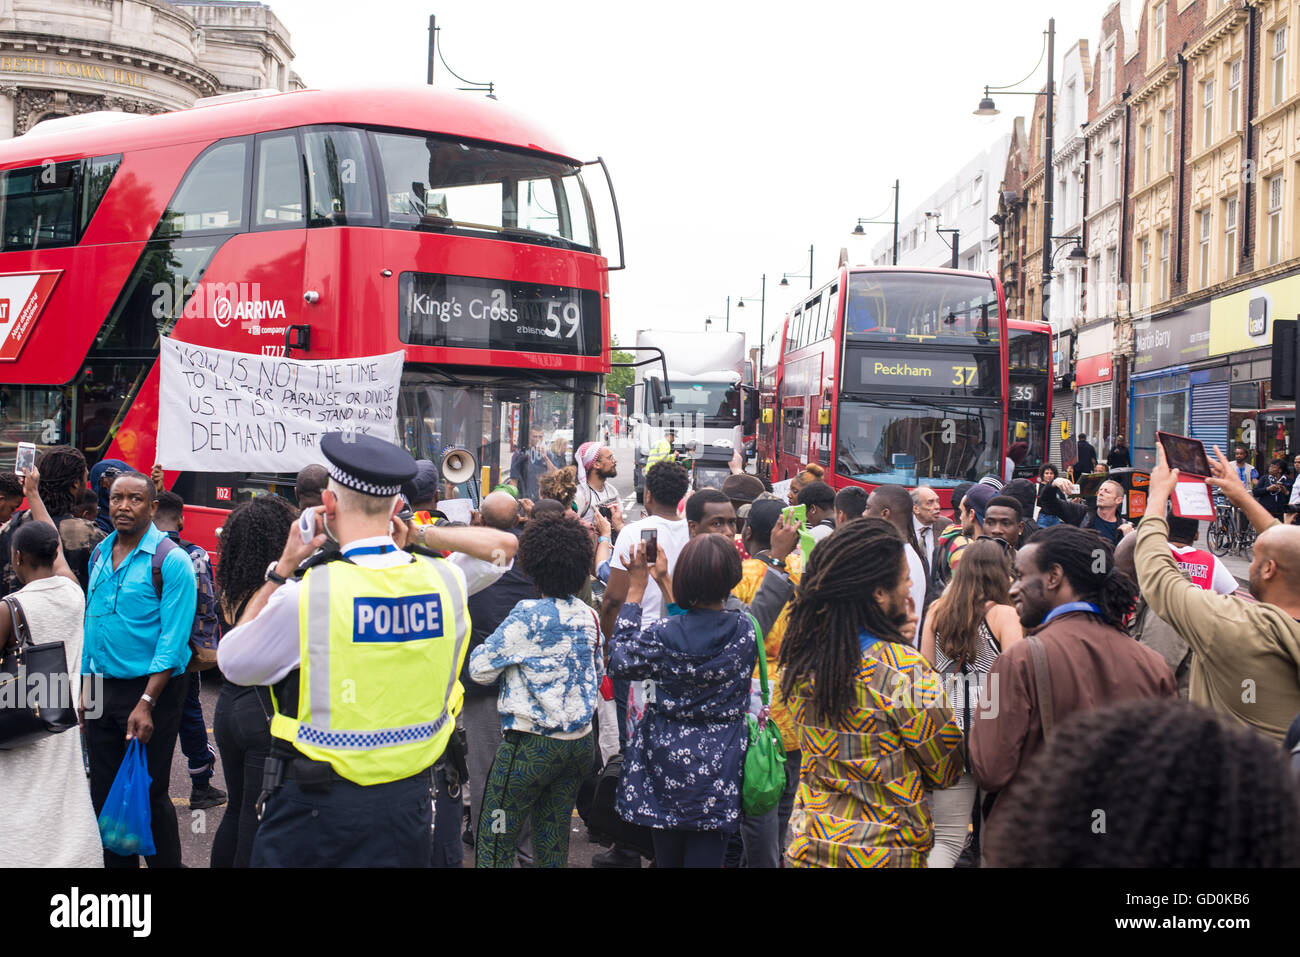 Brixton, London, UK. 9th July 2016. Bus stopped by Black Live Matters protesters. Hundreds of Black Lives Matter - Stock Image